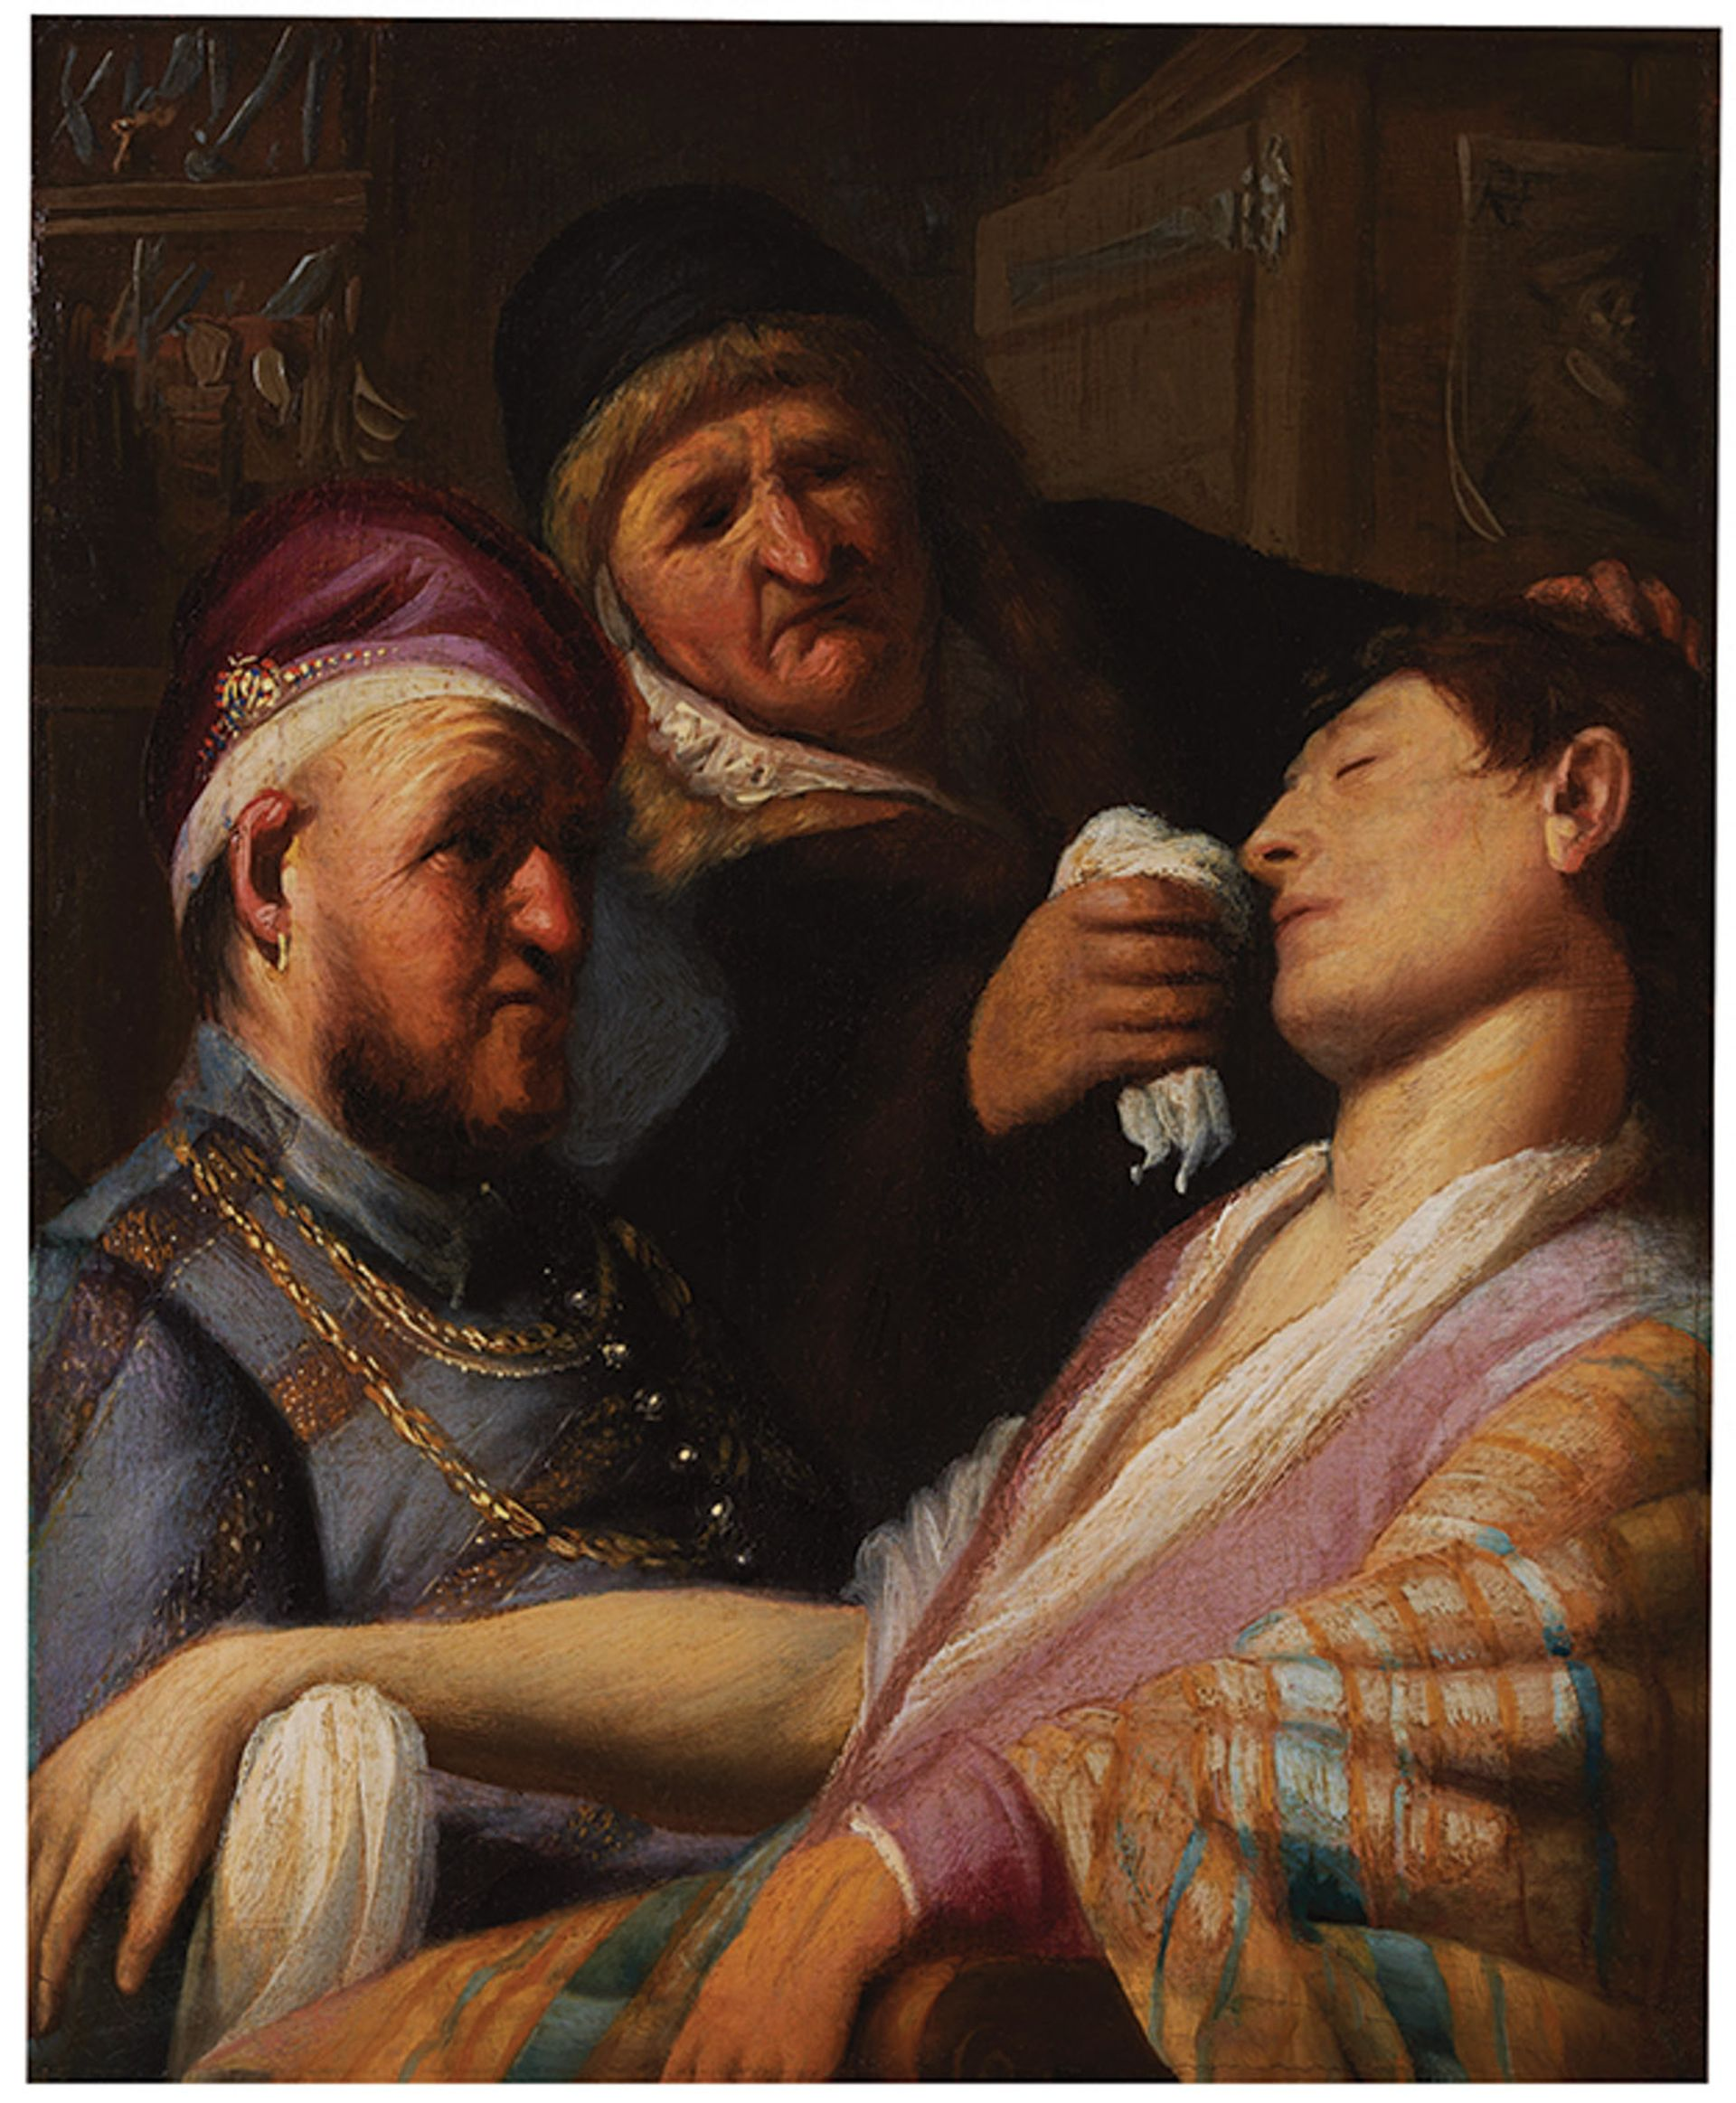 Rembrandt's Unconscious Patient (Allegory of Smell) van Rijn (around 1624–25) belonged to Jay Rappoport's grandfather Courtesy of The Leiden Collection